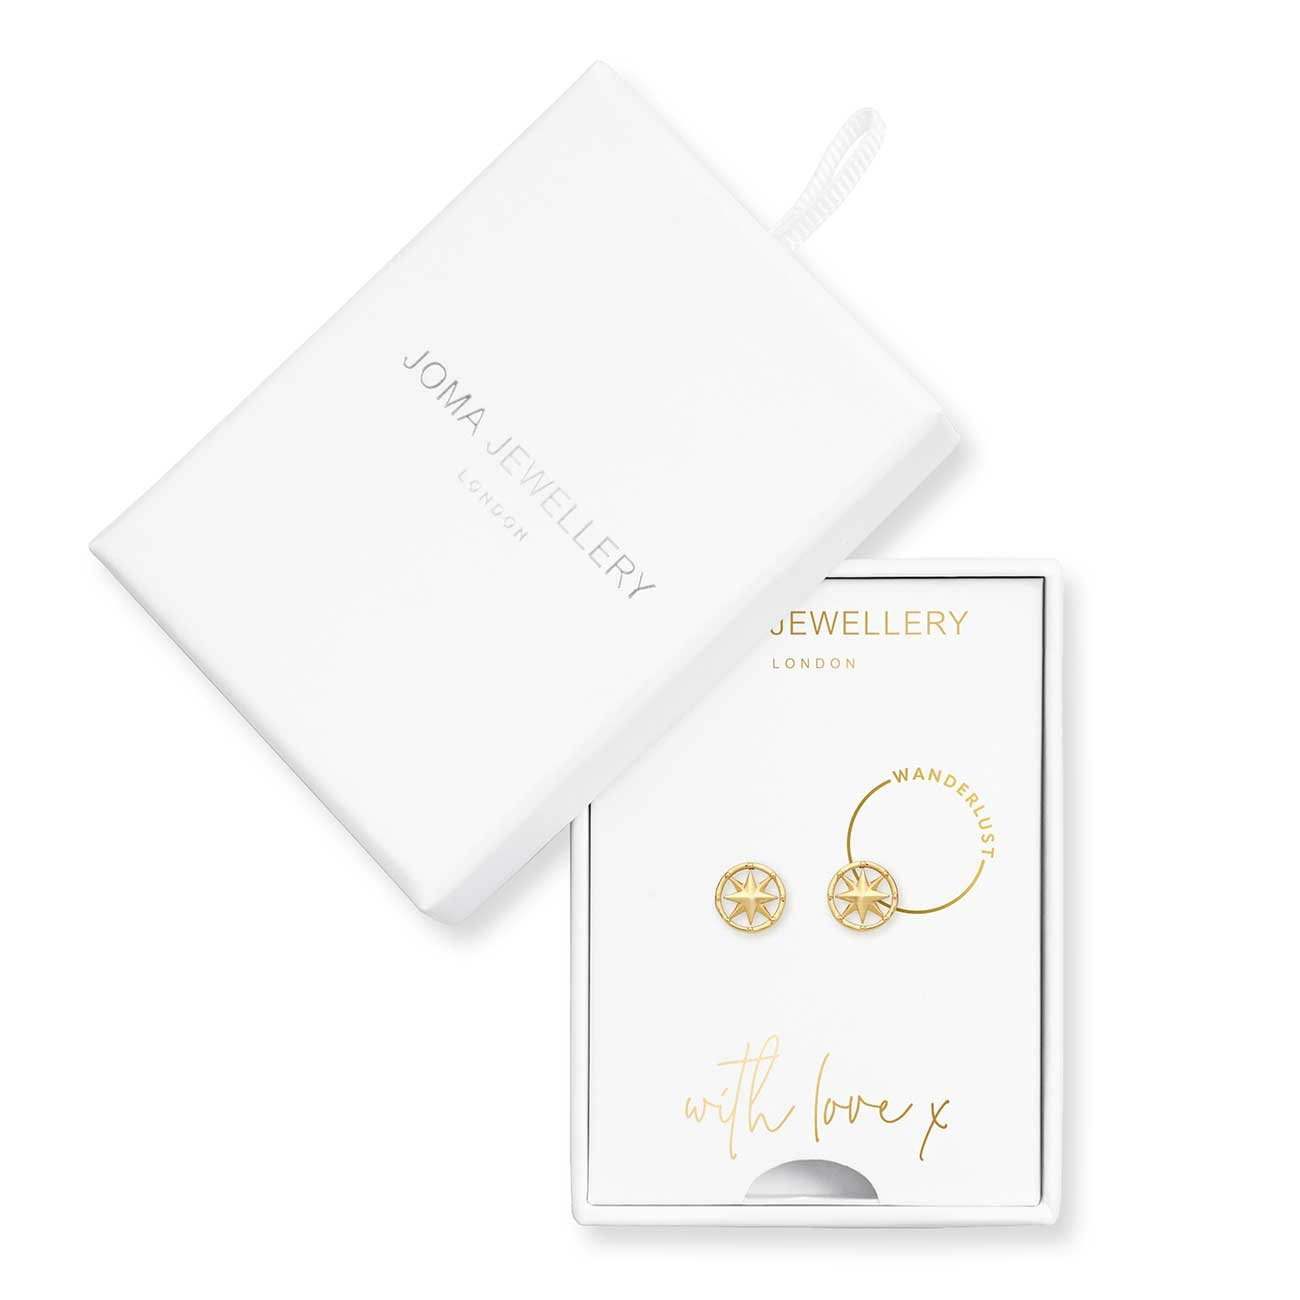 Joma Jewellery TREASURE THE LITTLE THINGS | WANDERLUST EARRING BOX